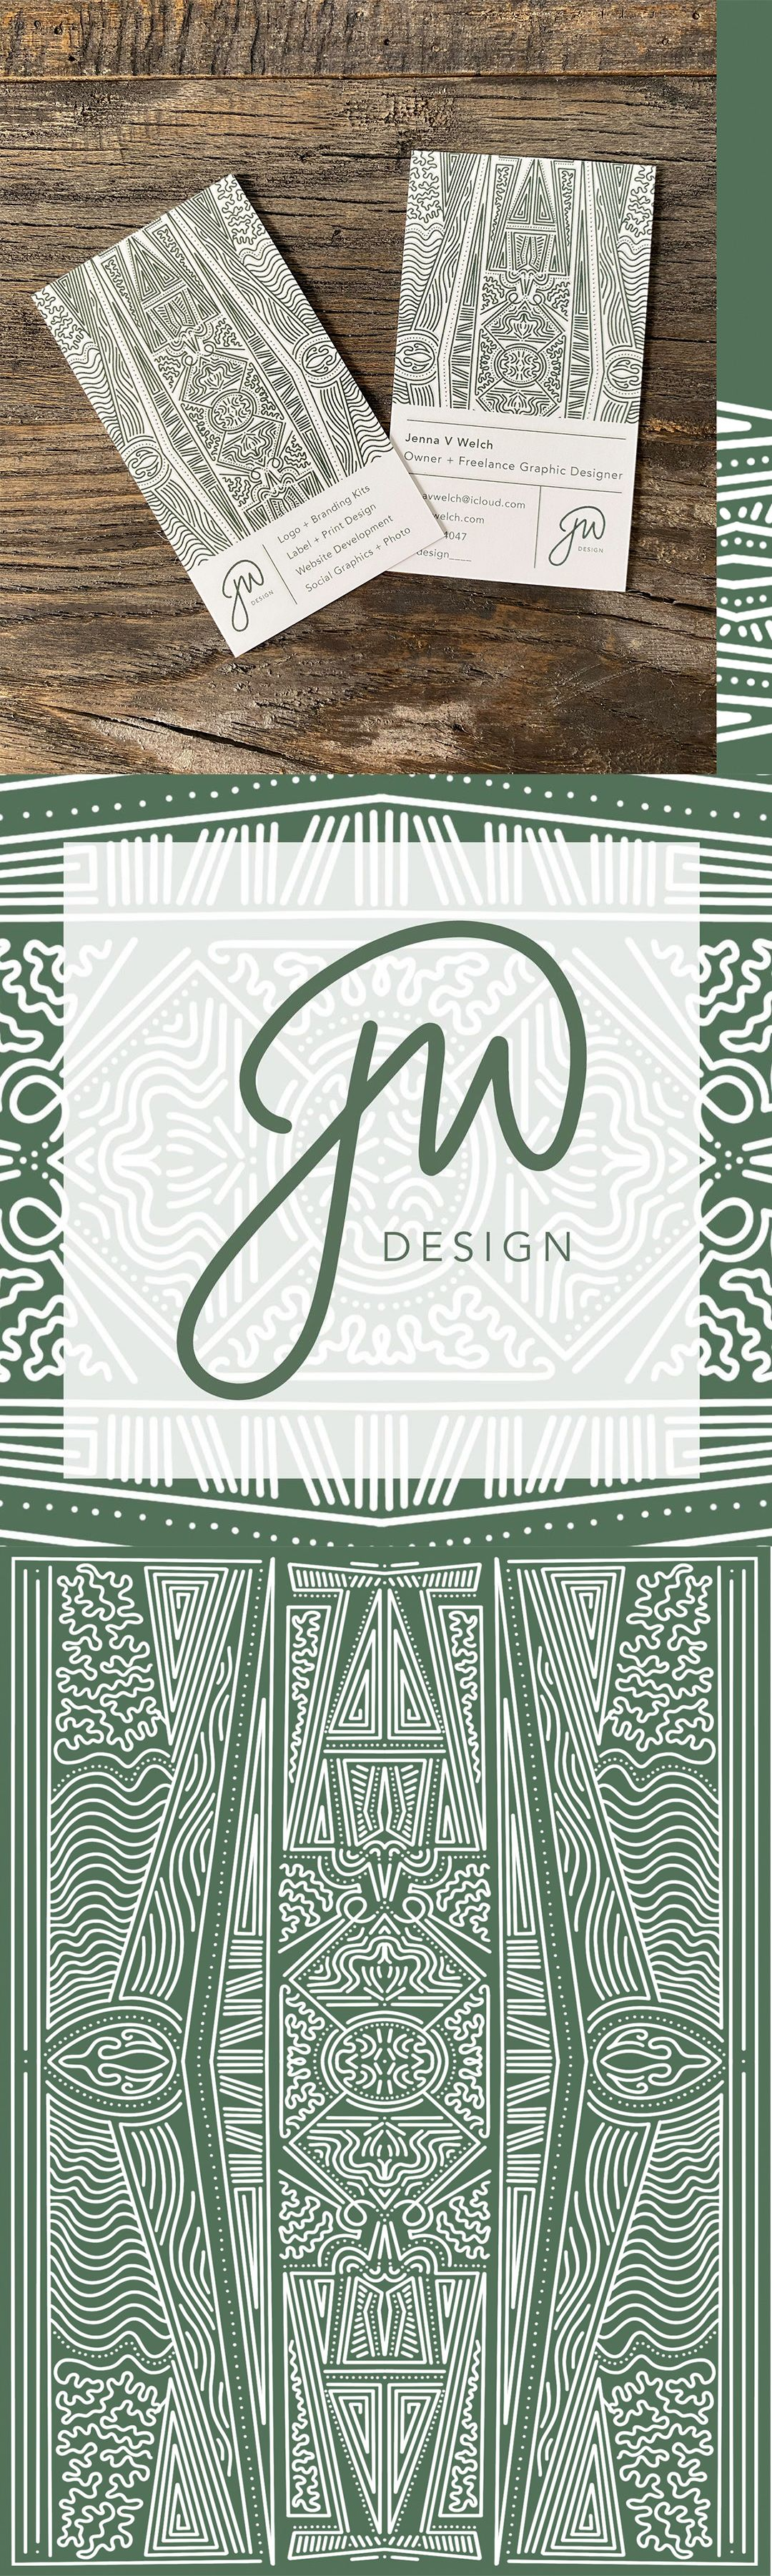 Jw Design Business Card In 2020 Business Card Gallery Business Card Design Business Design